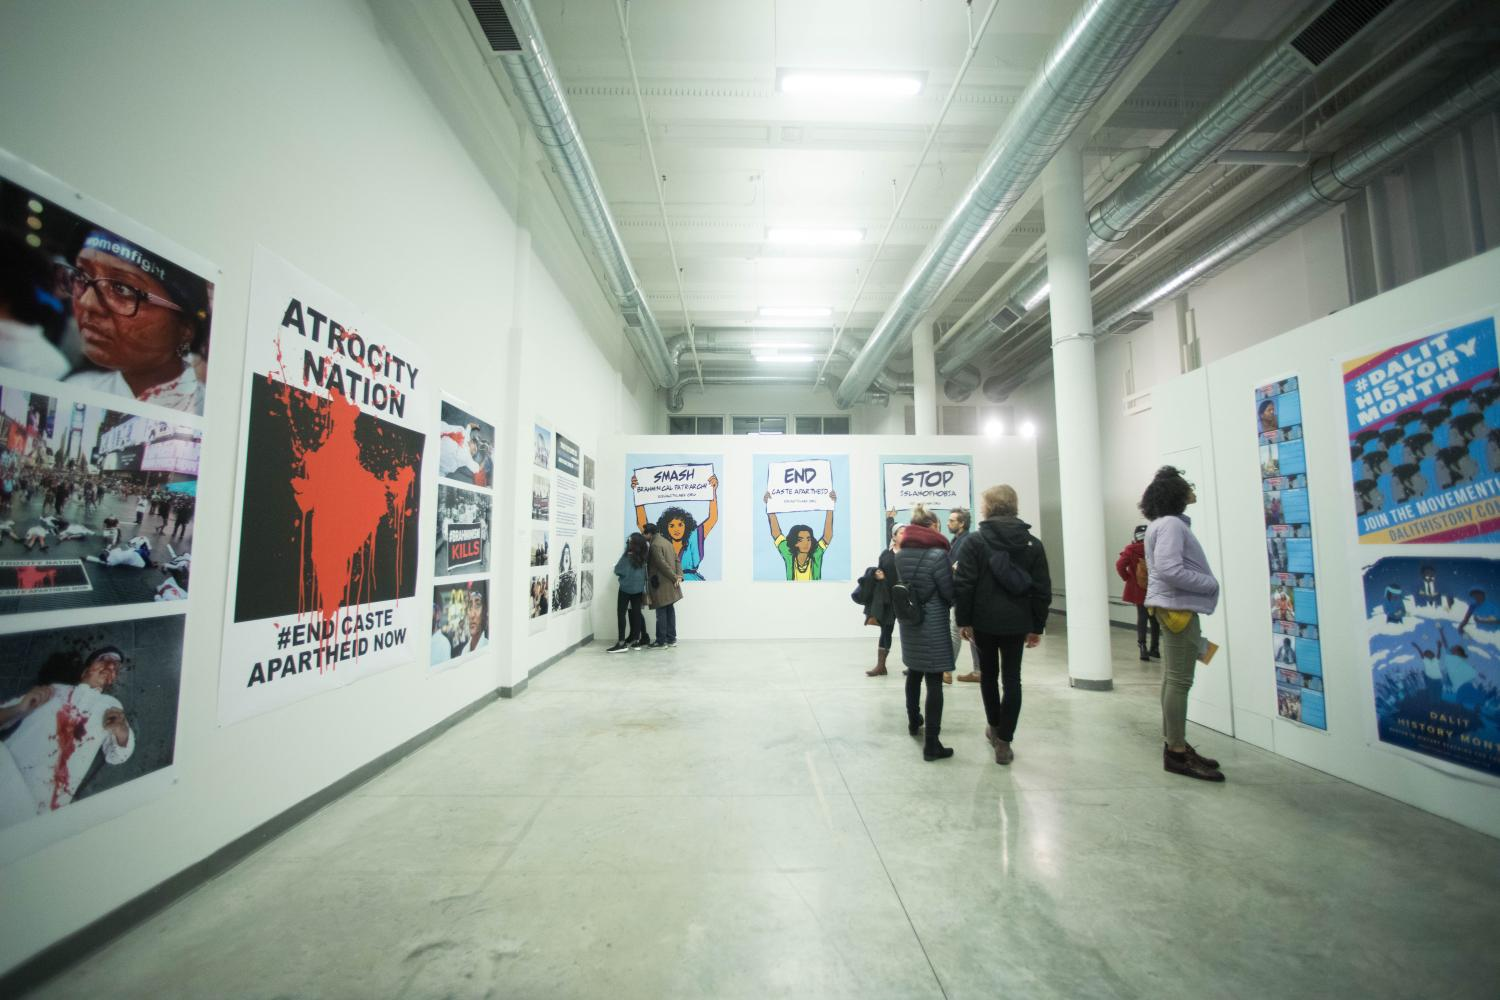 Image of open gallery space with posters on the walls and 6 visitors viewing artwork.